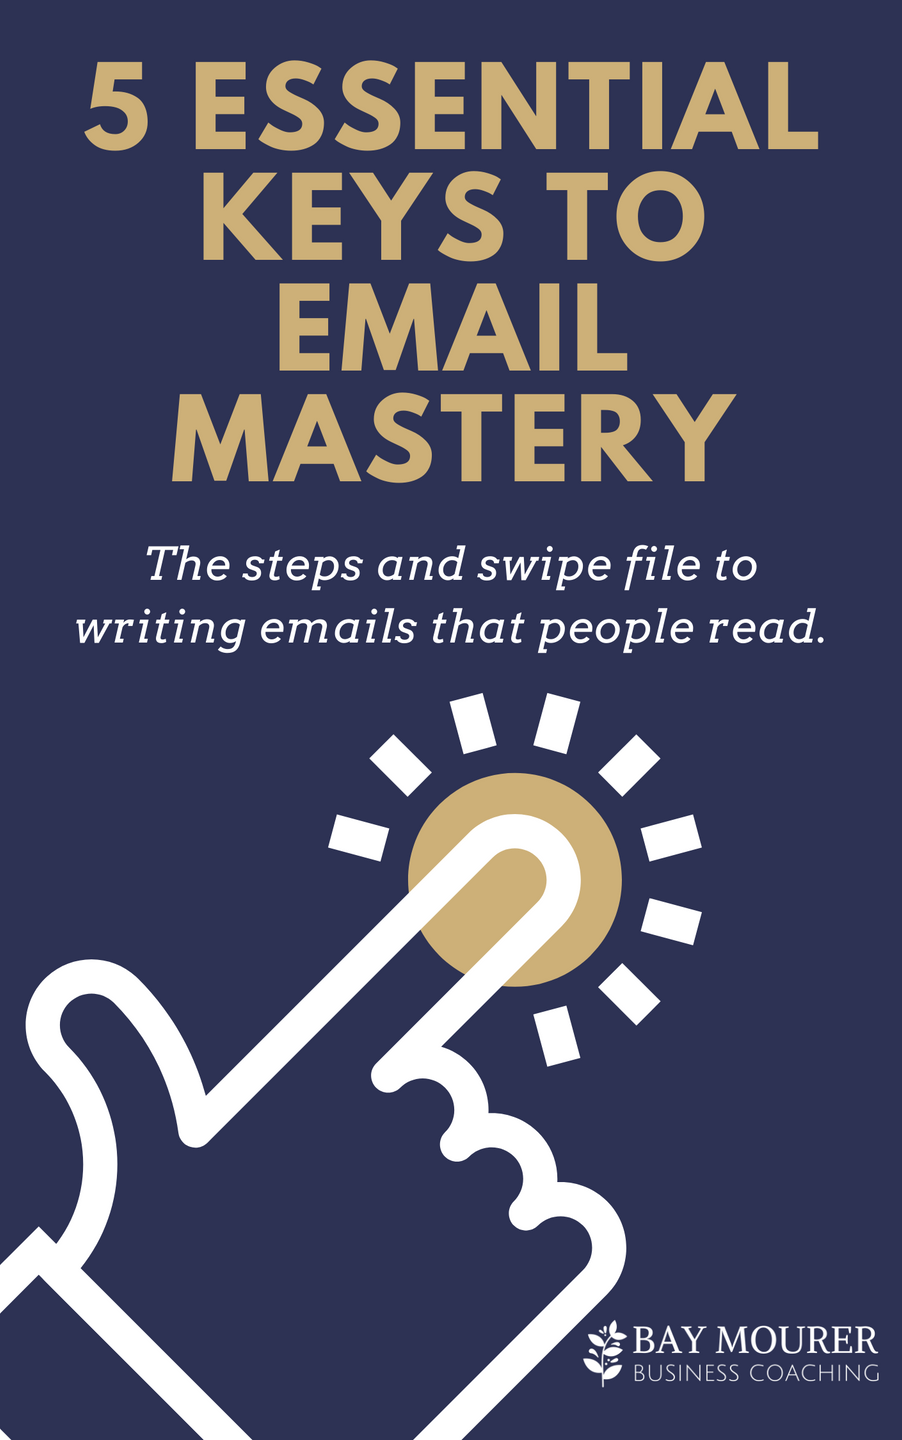 5 Essential Keys to Email Mastery